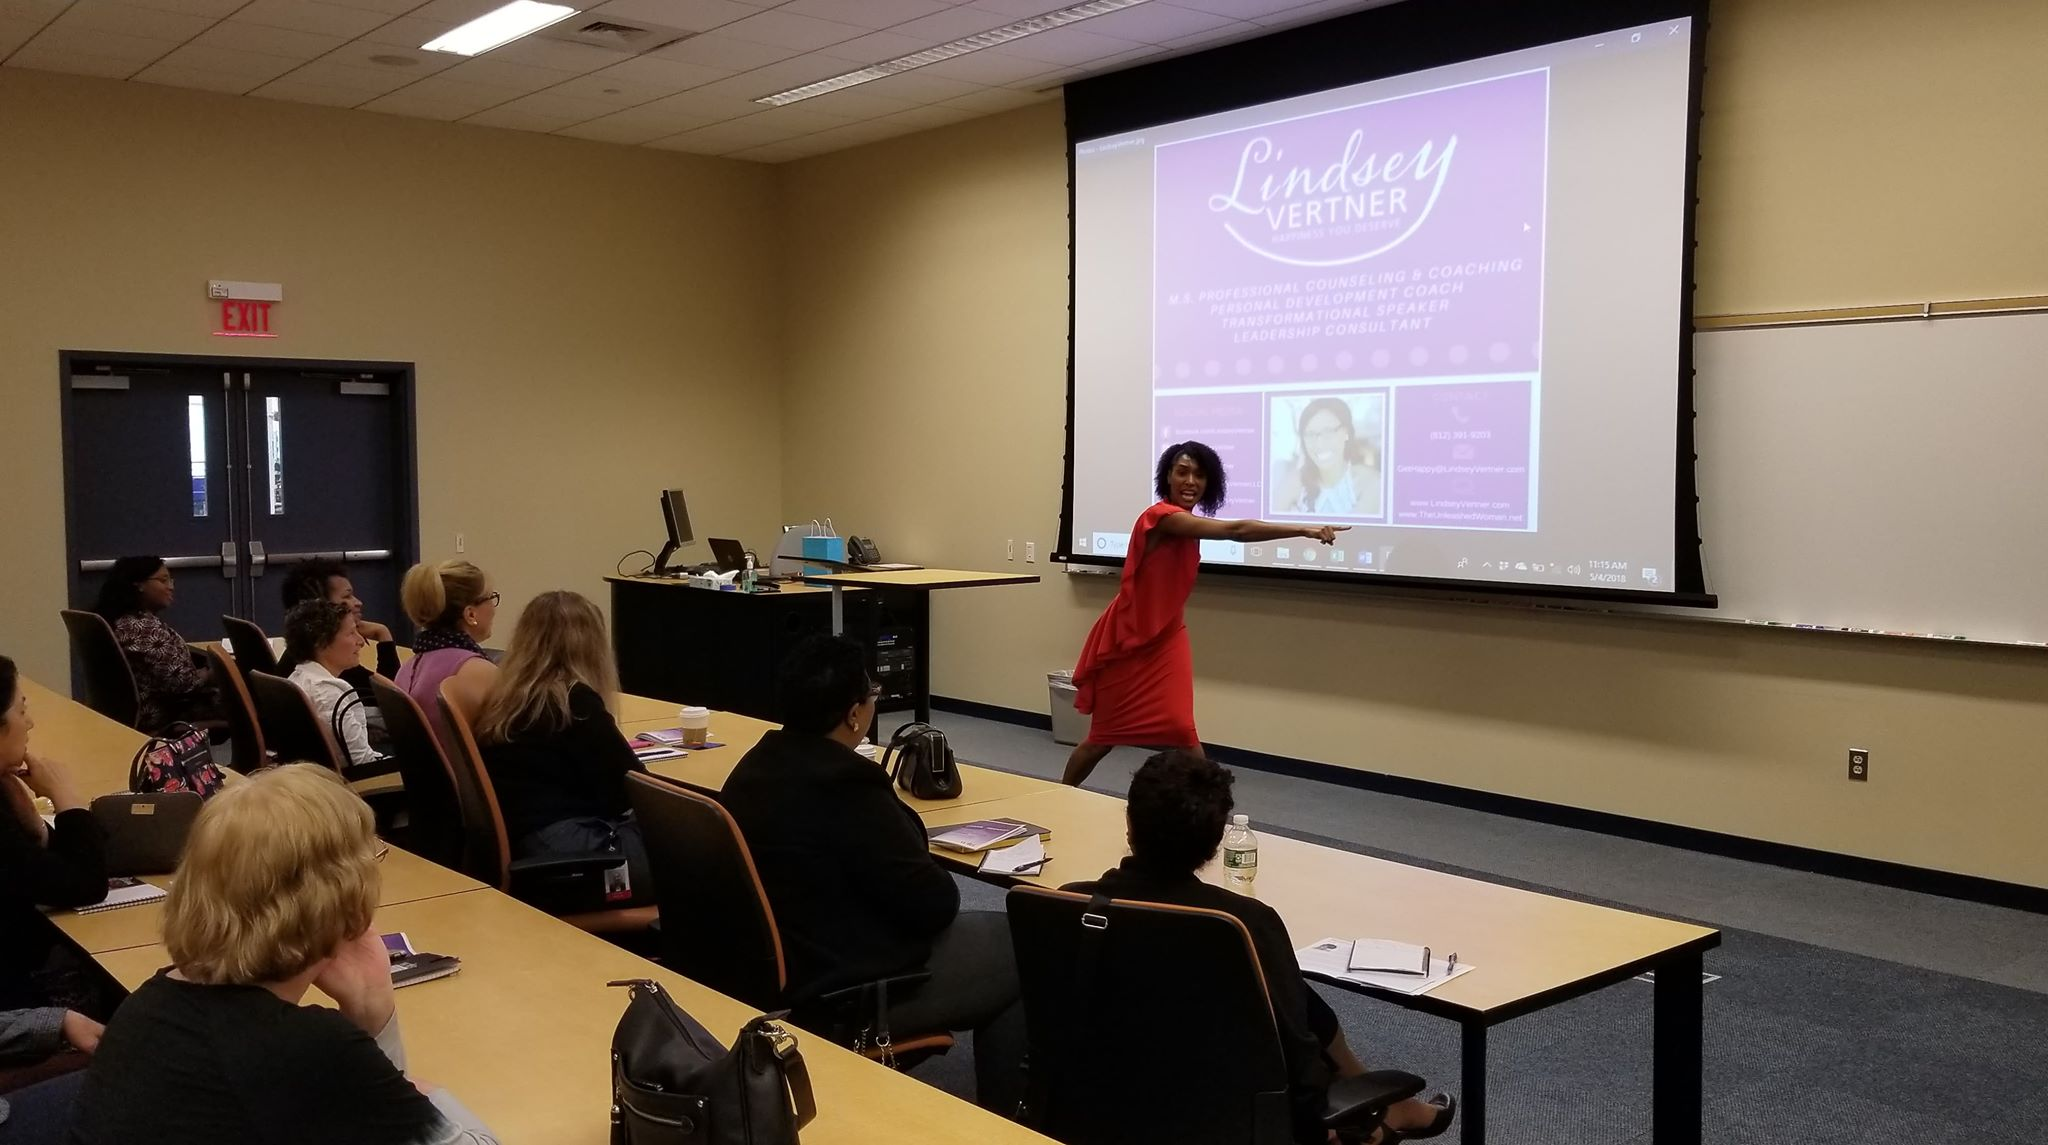 Lindsey Vertner speaking at the Women In Business Summit in Connecticut.